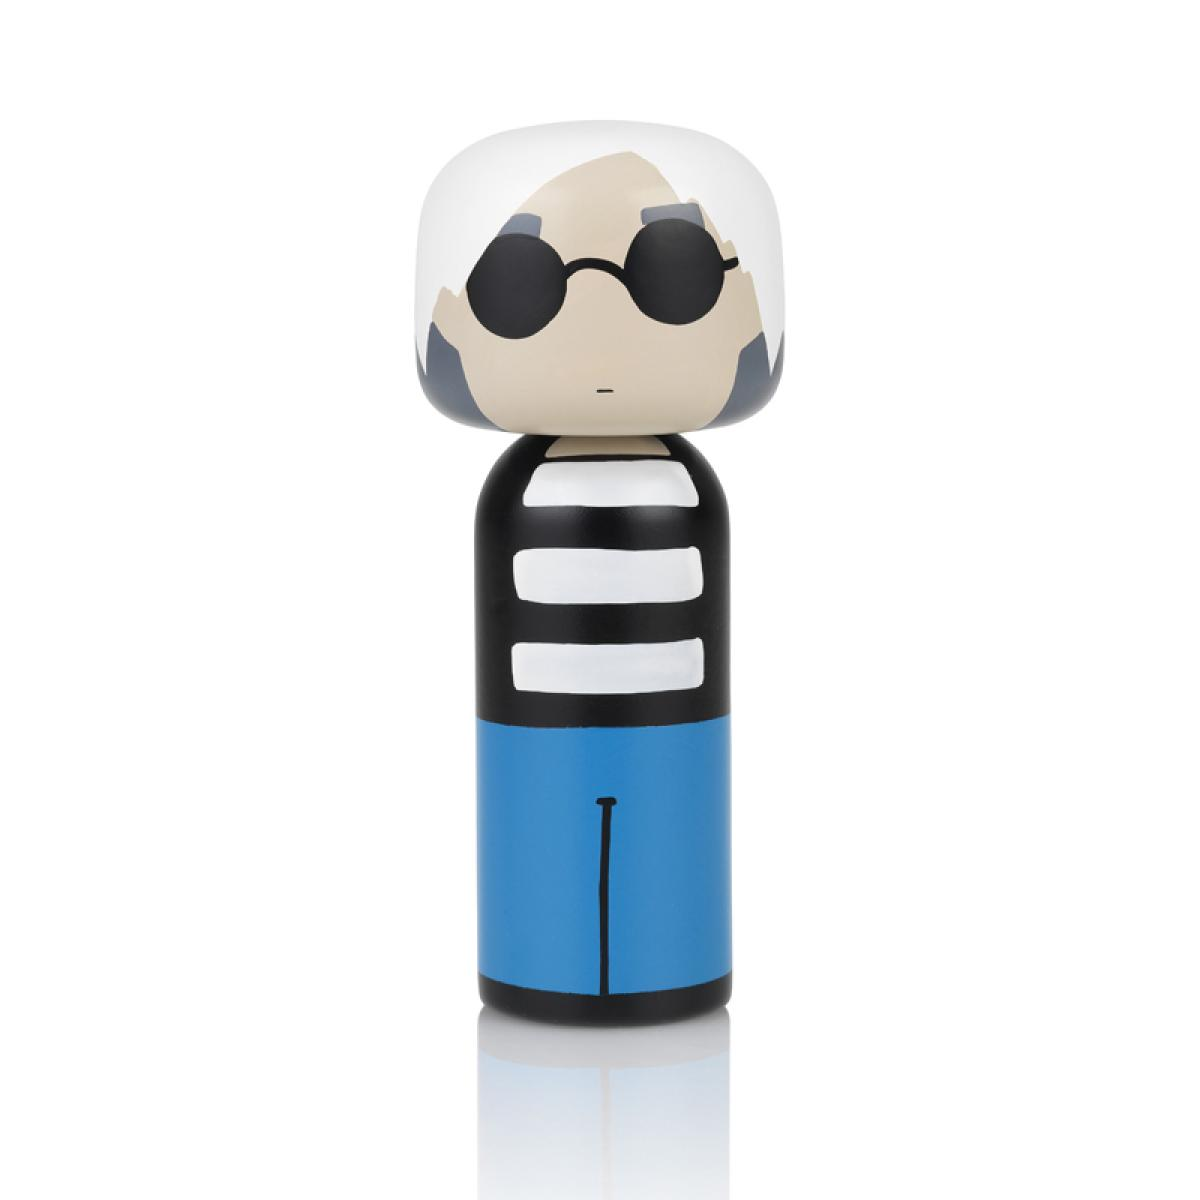 Andy Warhol by Lucie Kaas wooden kokeshi doll